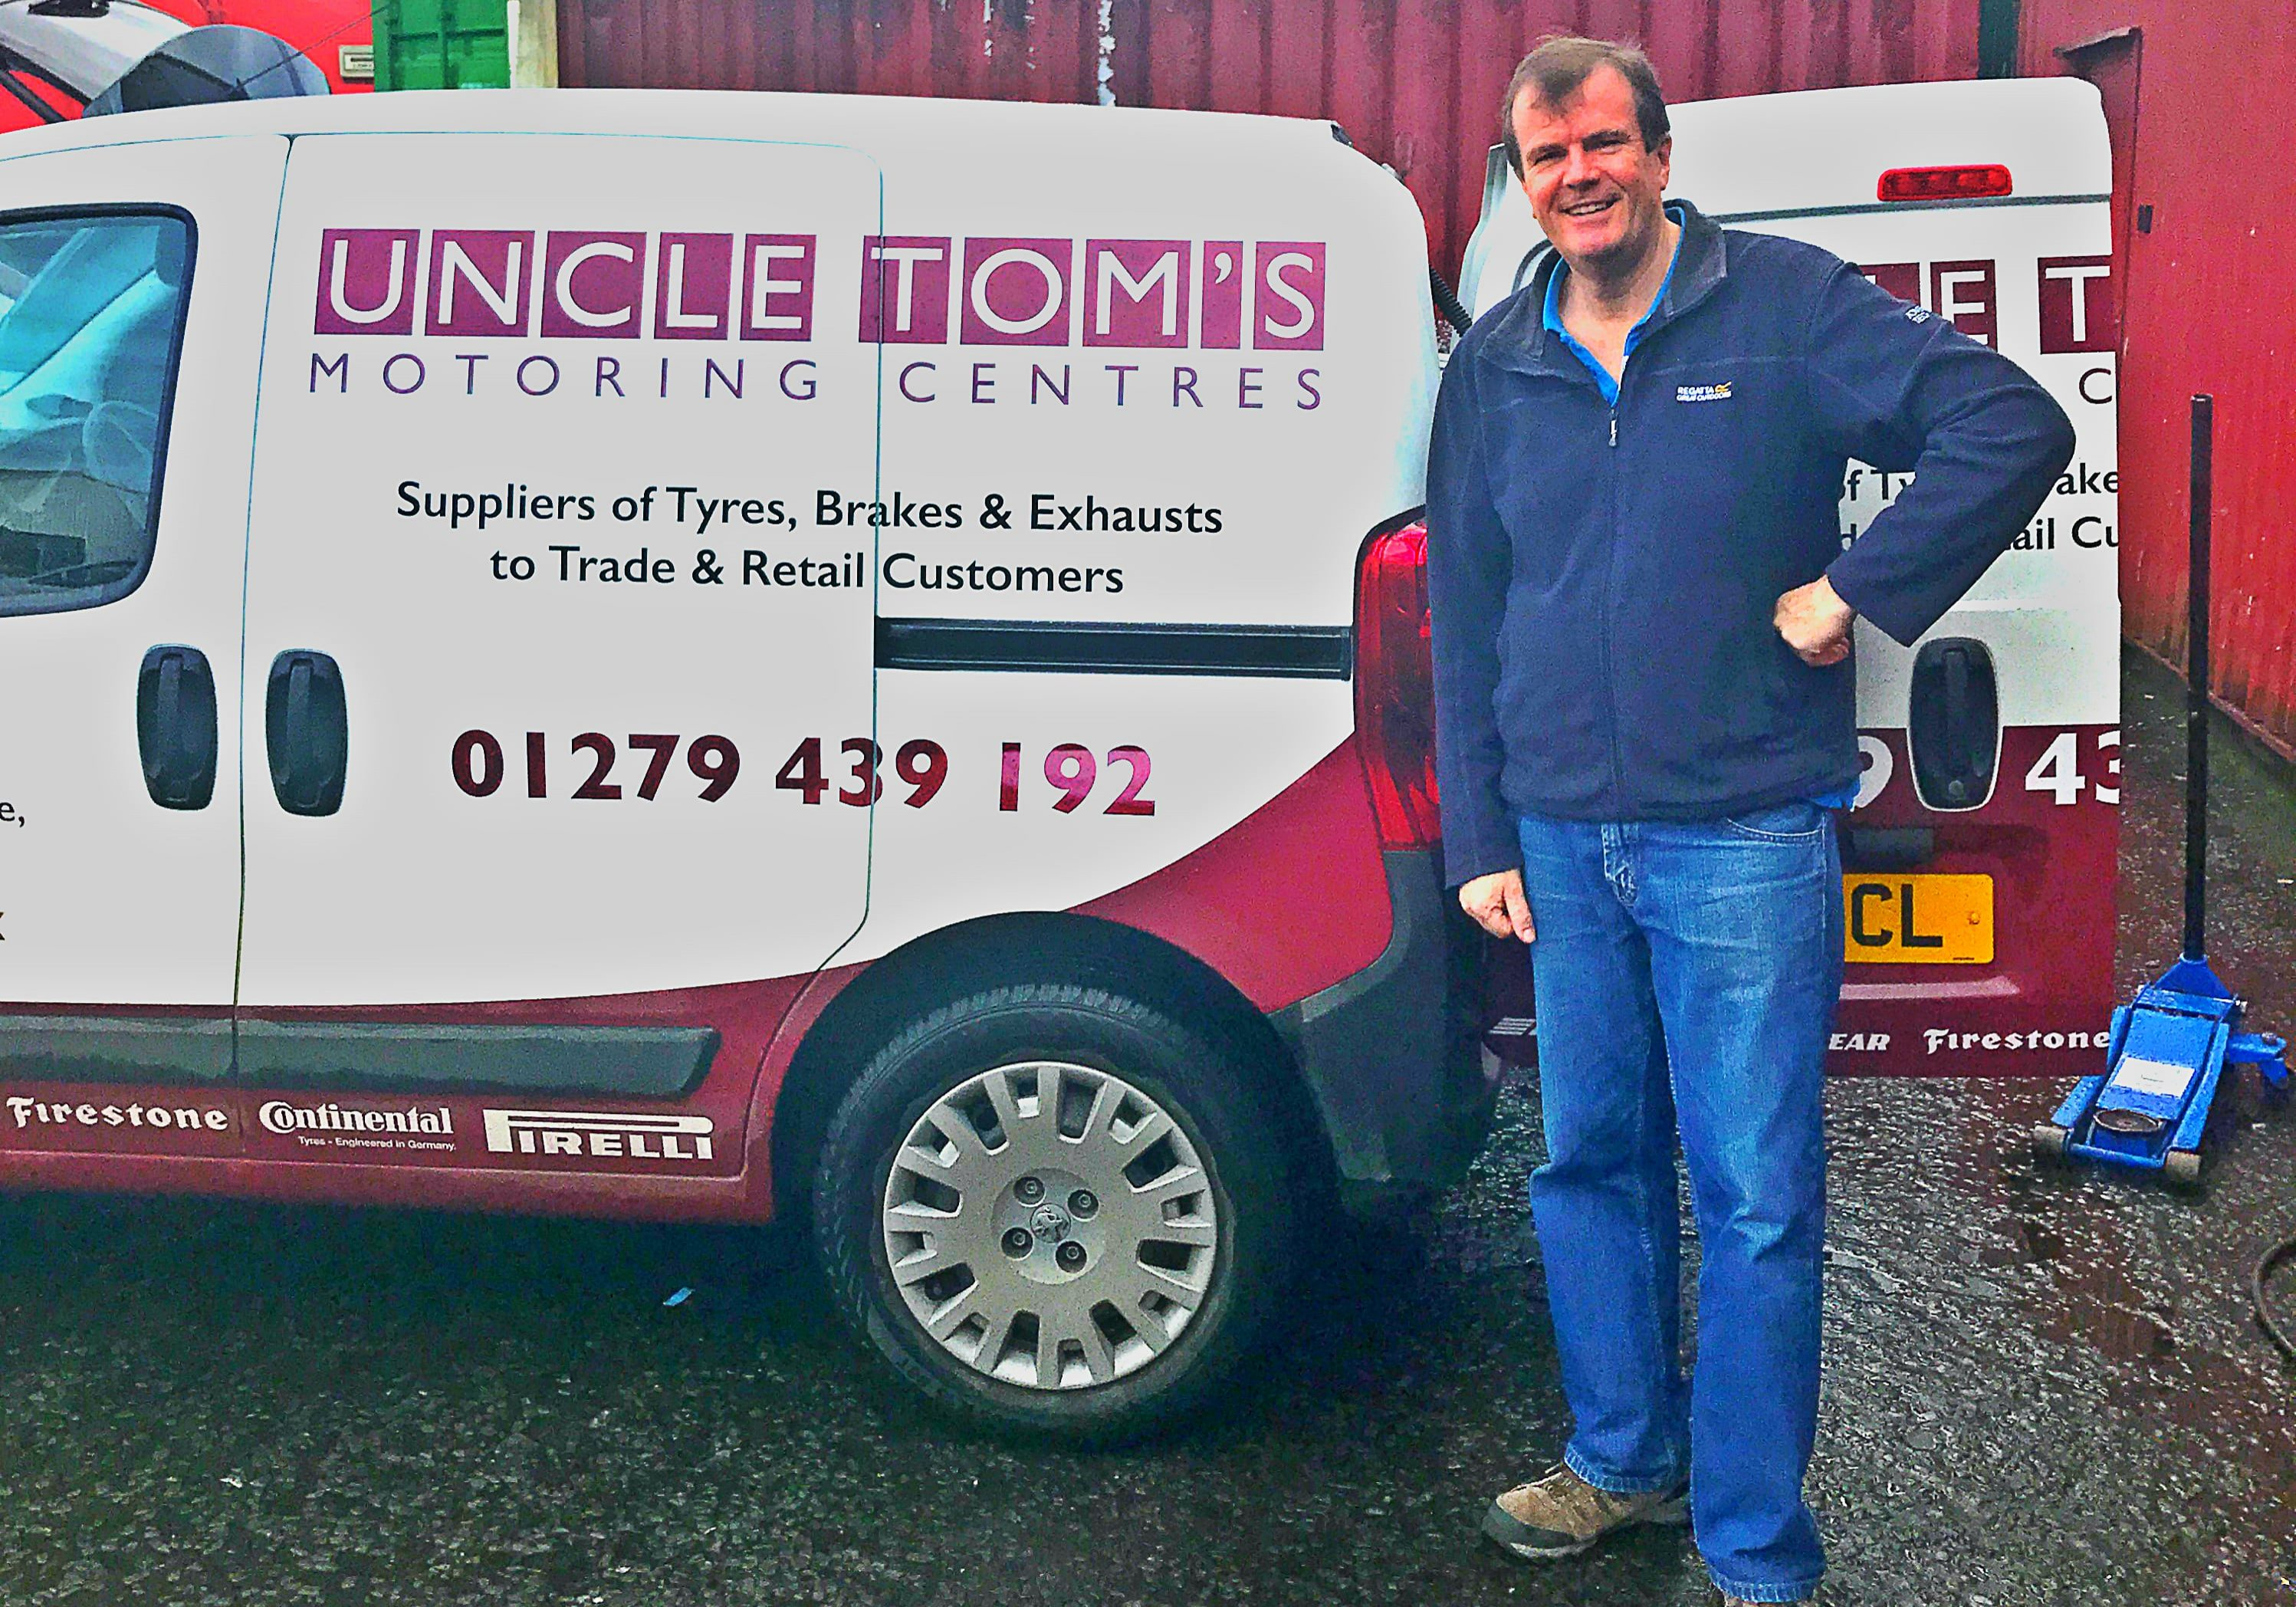 Laurence Nicholls  from Uncle Tom's stands proudly alongside his van after joining the First Stop Network